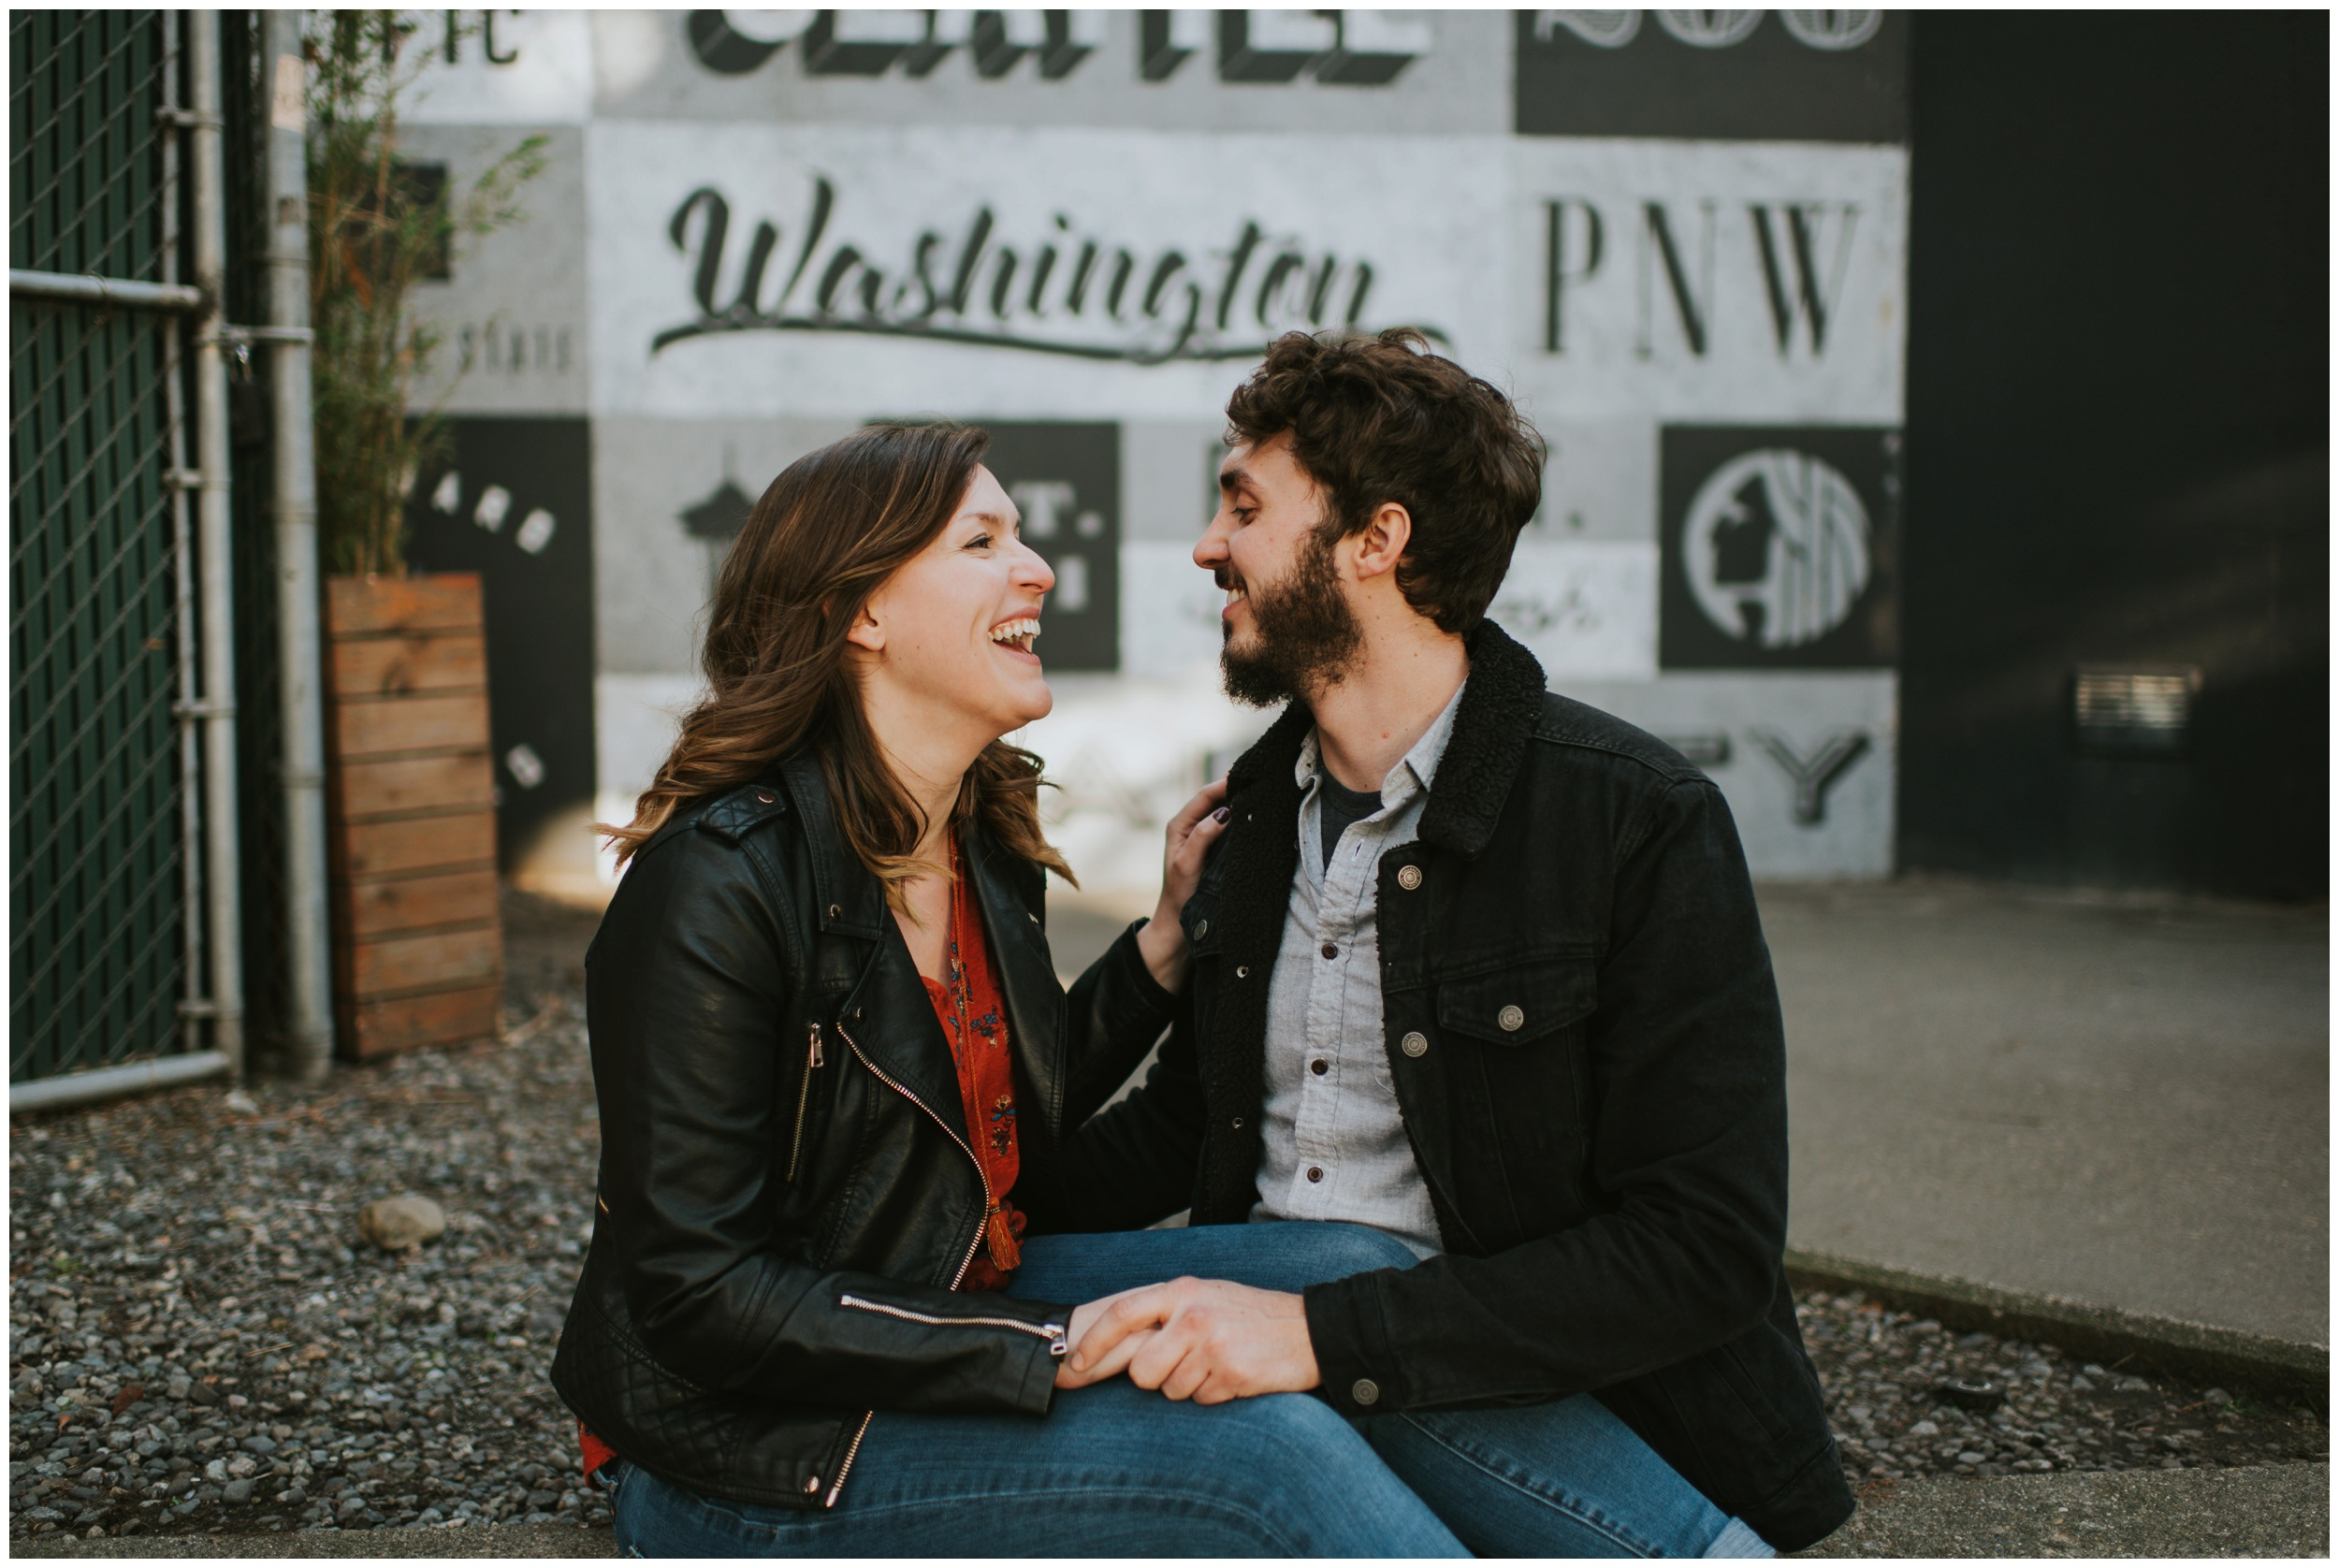 Engagement photos in the PNW  | Seattle Engagement Photographer www.riversandroadsphotography.com